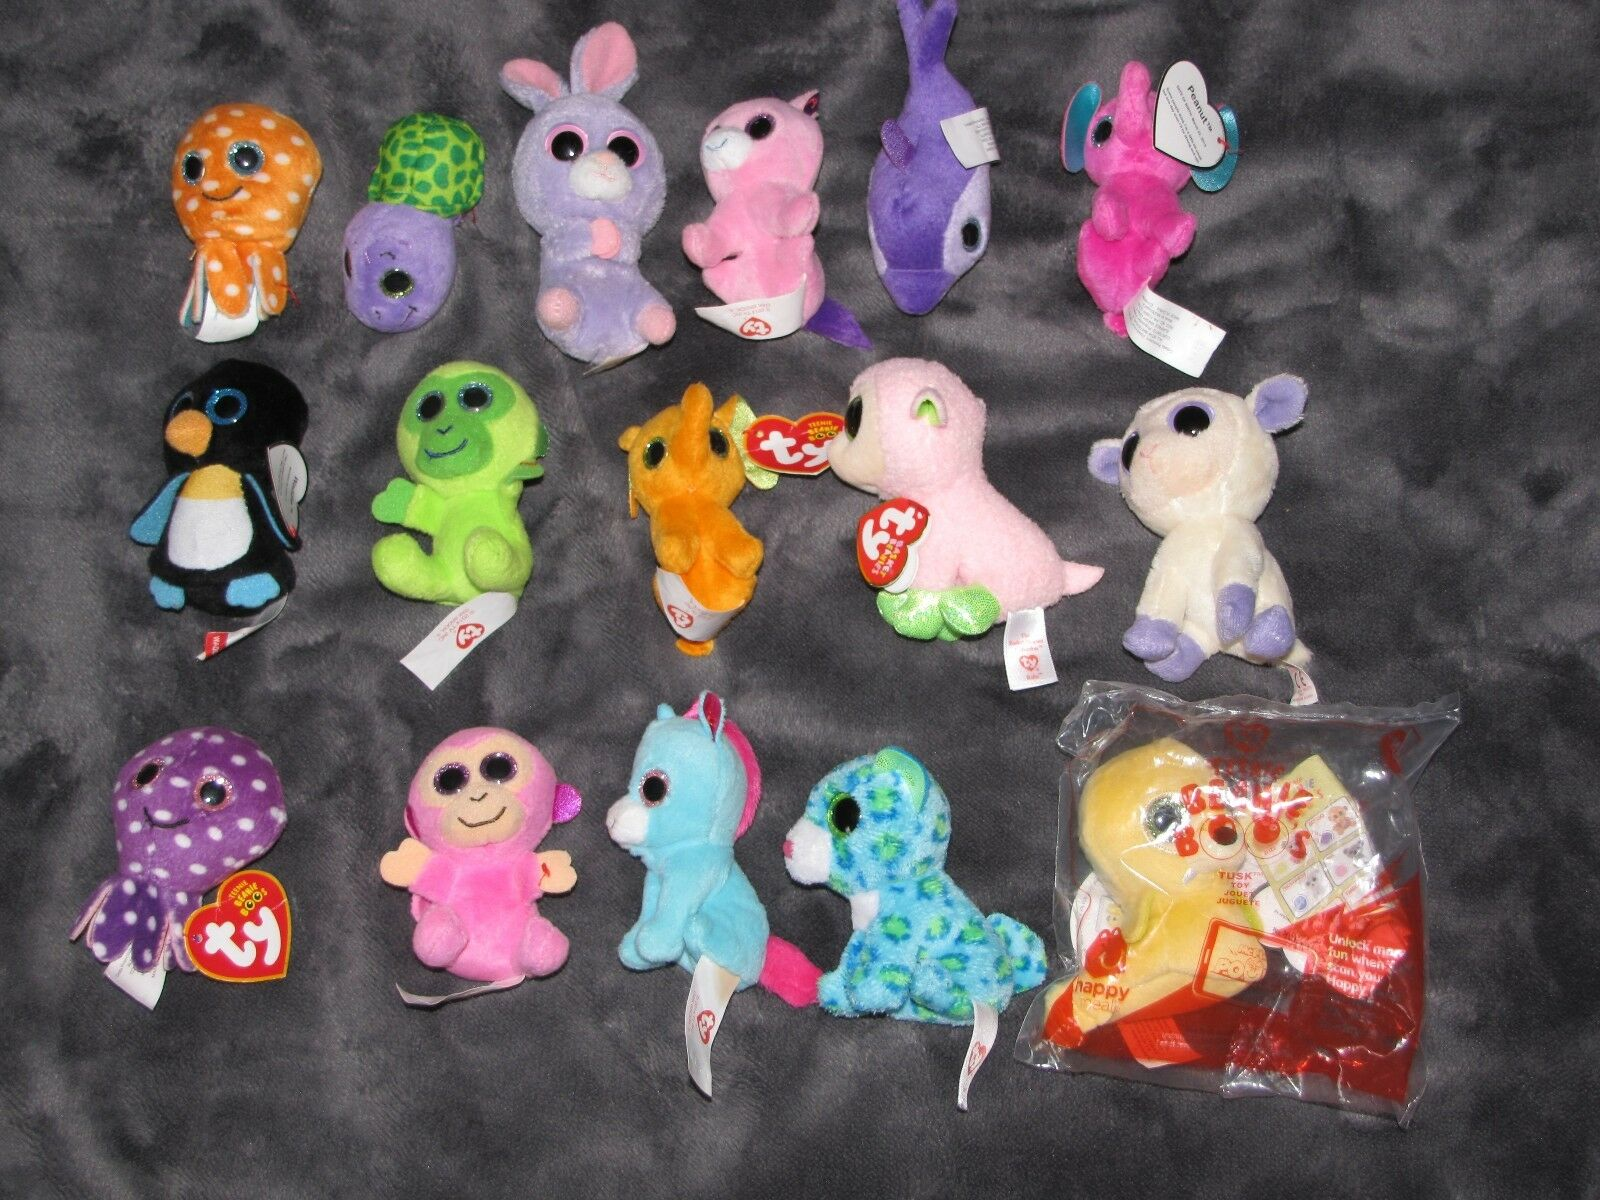 16 TY TEENIE BEANIE BOOS MCDONALDS MCDONALD'S STUFFED PLUSH SMALL MINI